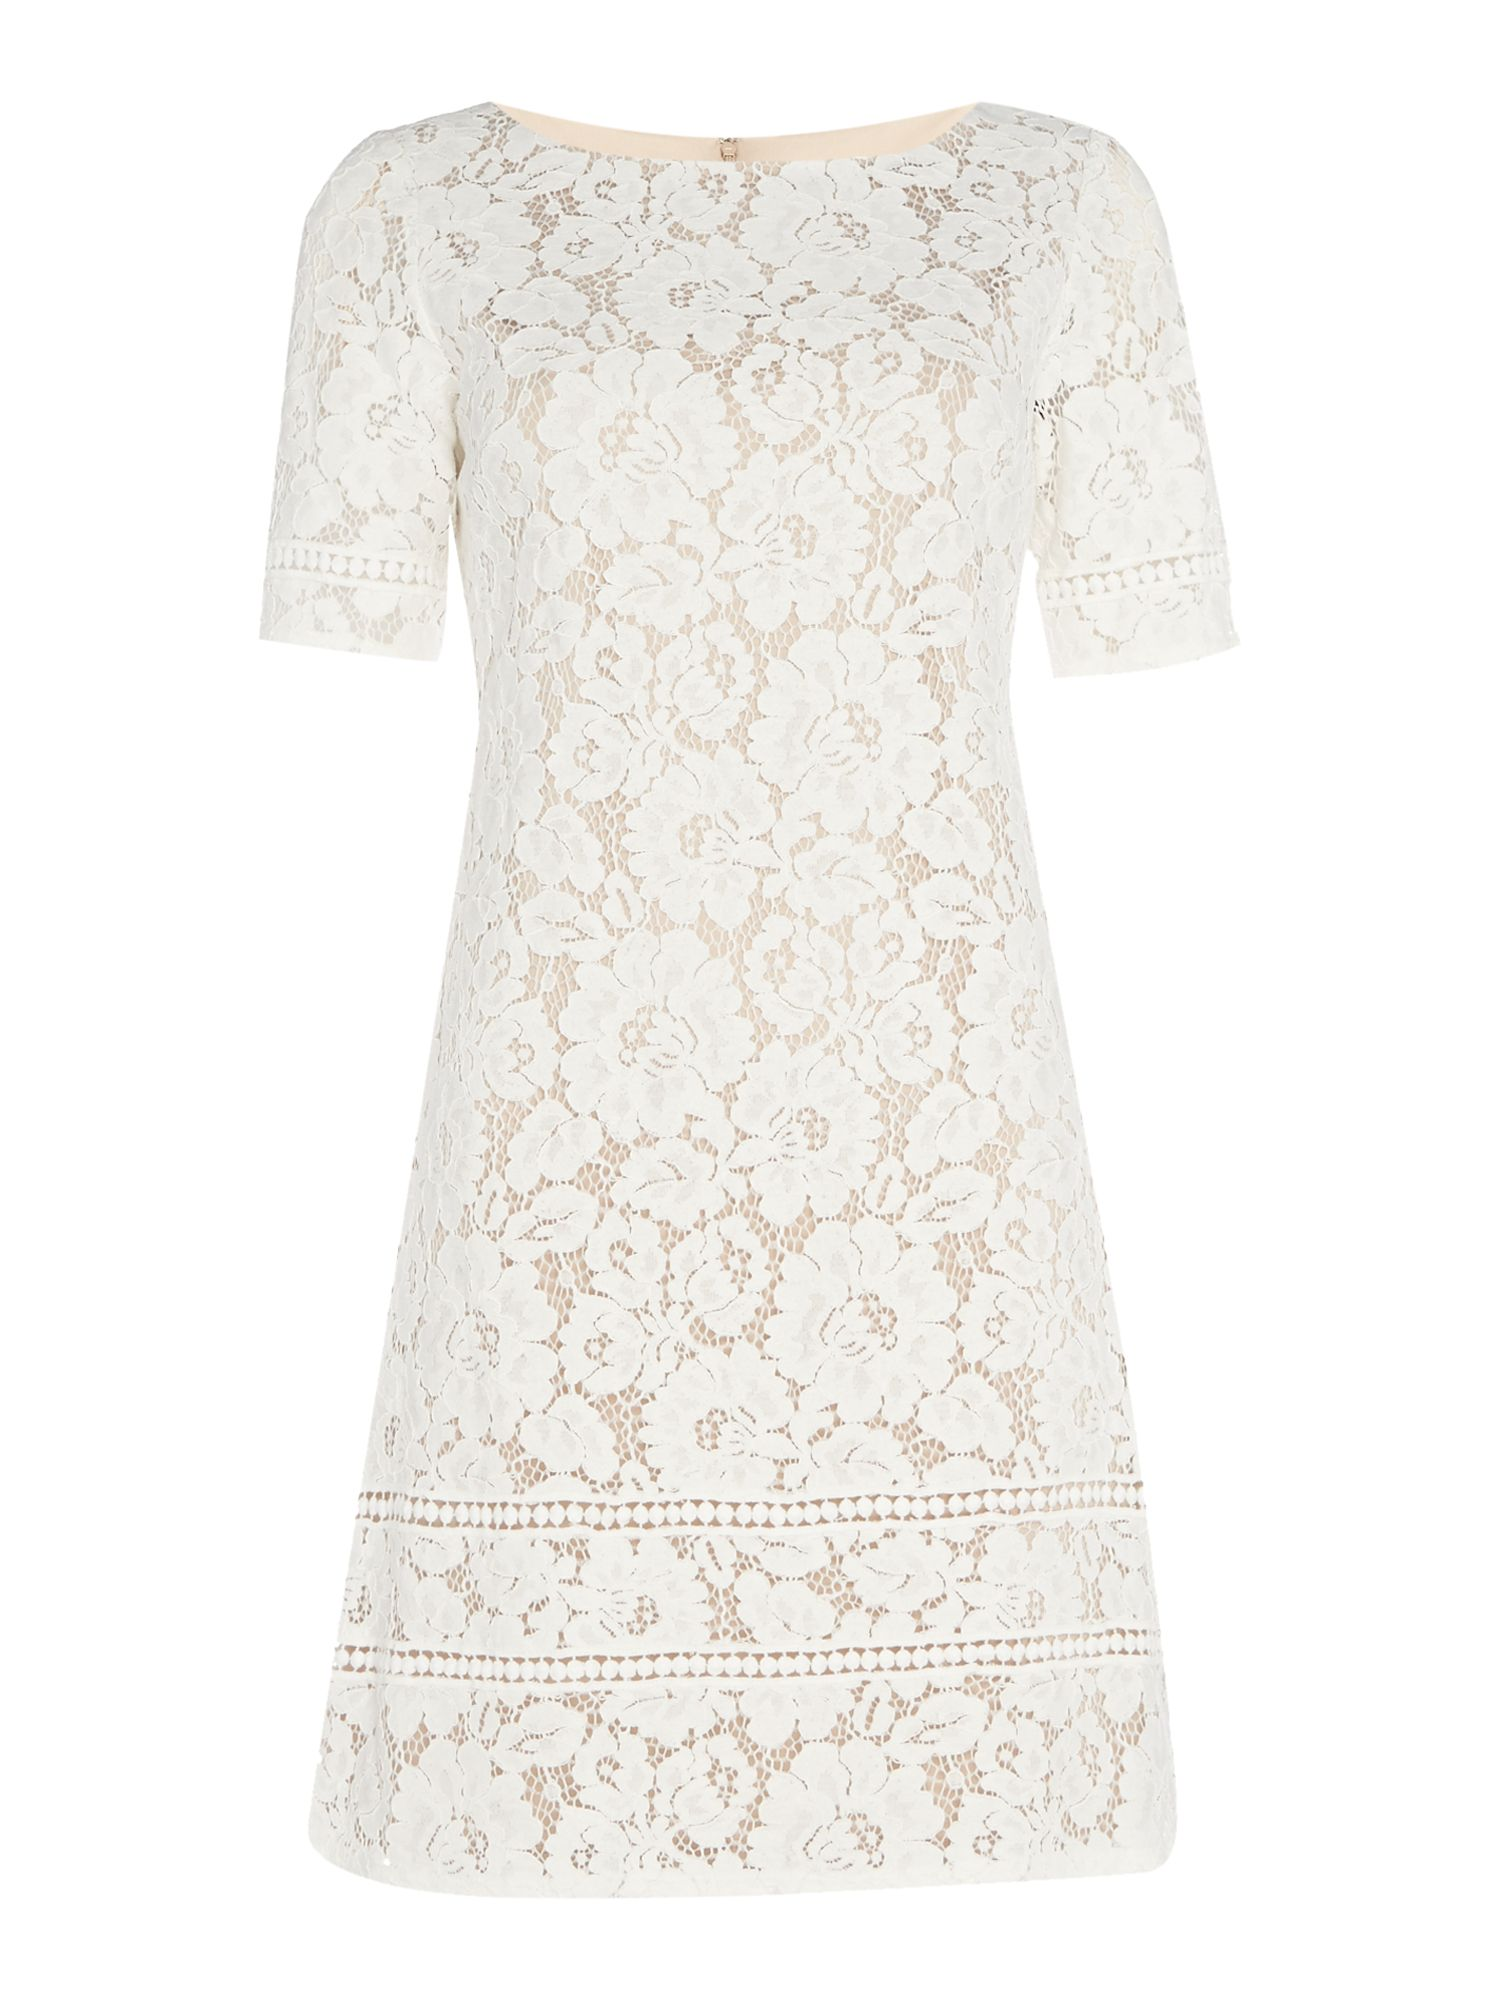 Eliza J Lace shift dress with insert hem, White